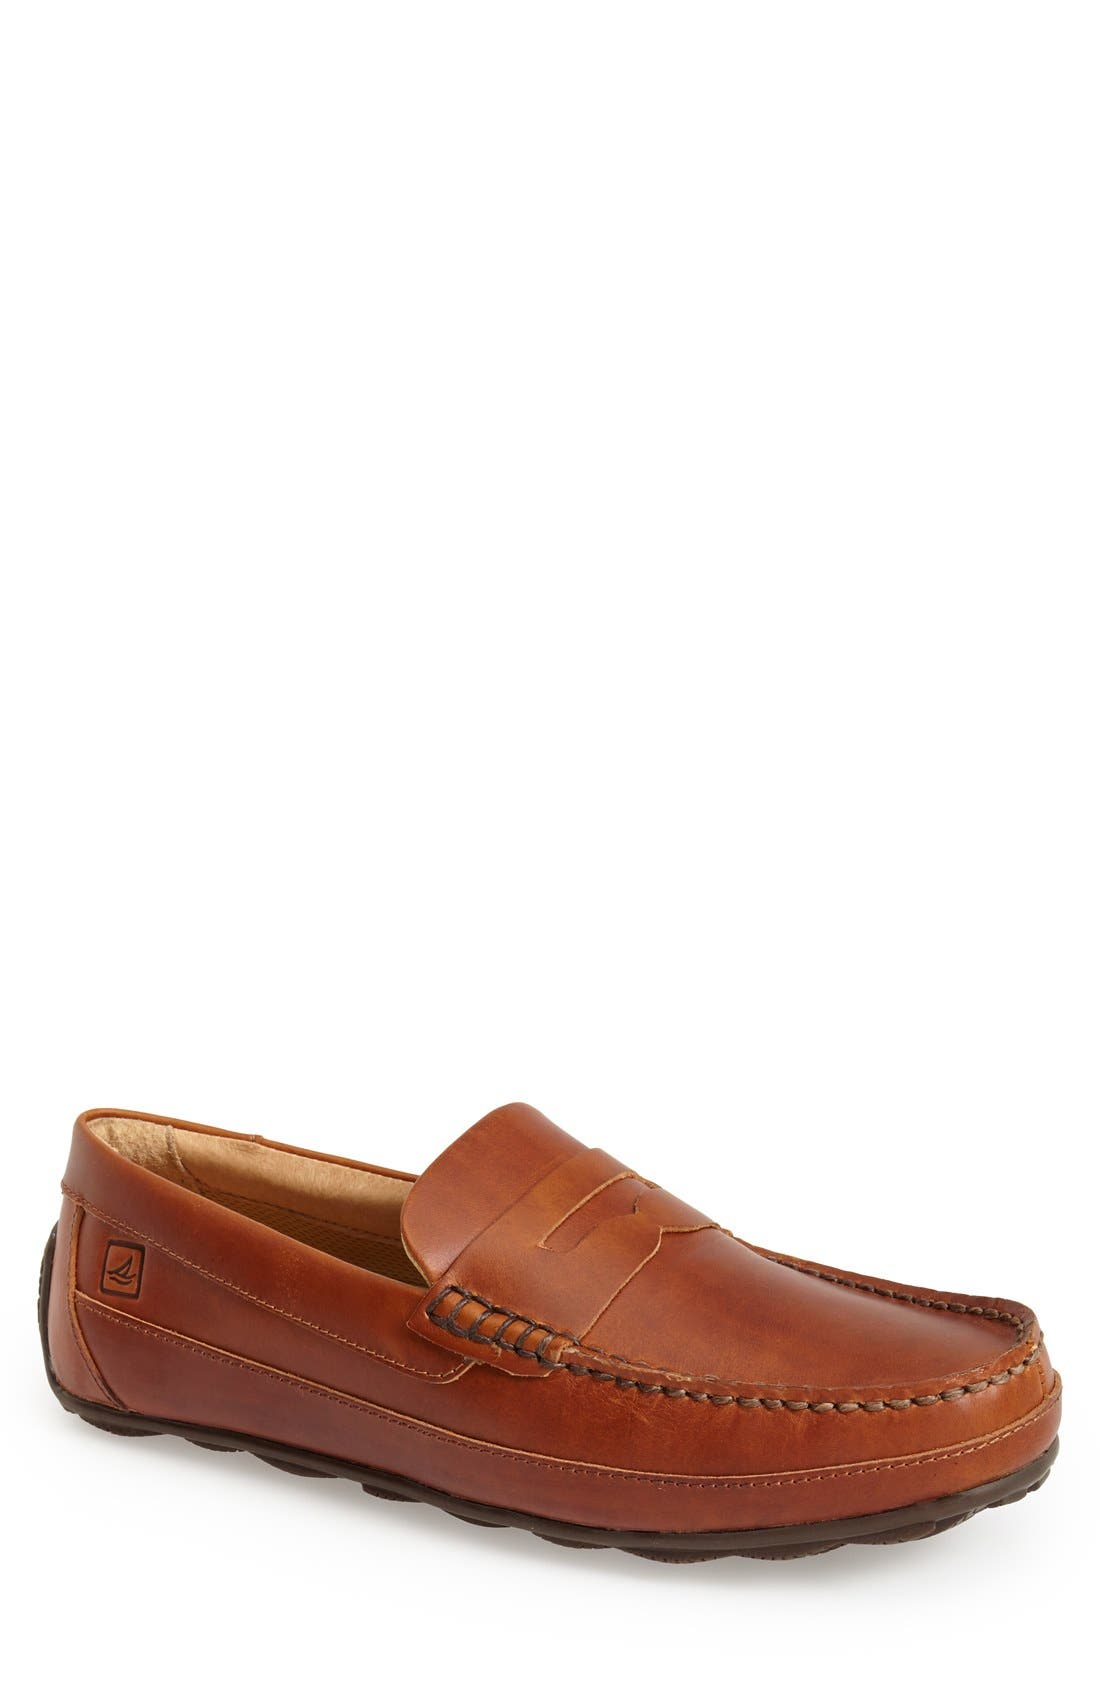 SPERRY 'Hampden' Penny Loafer, Main, color, TAN